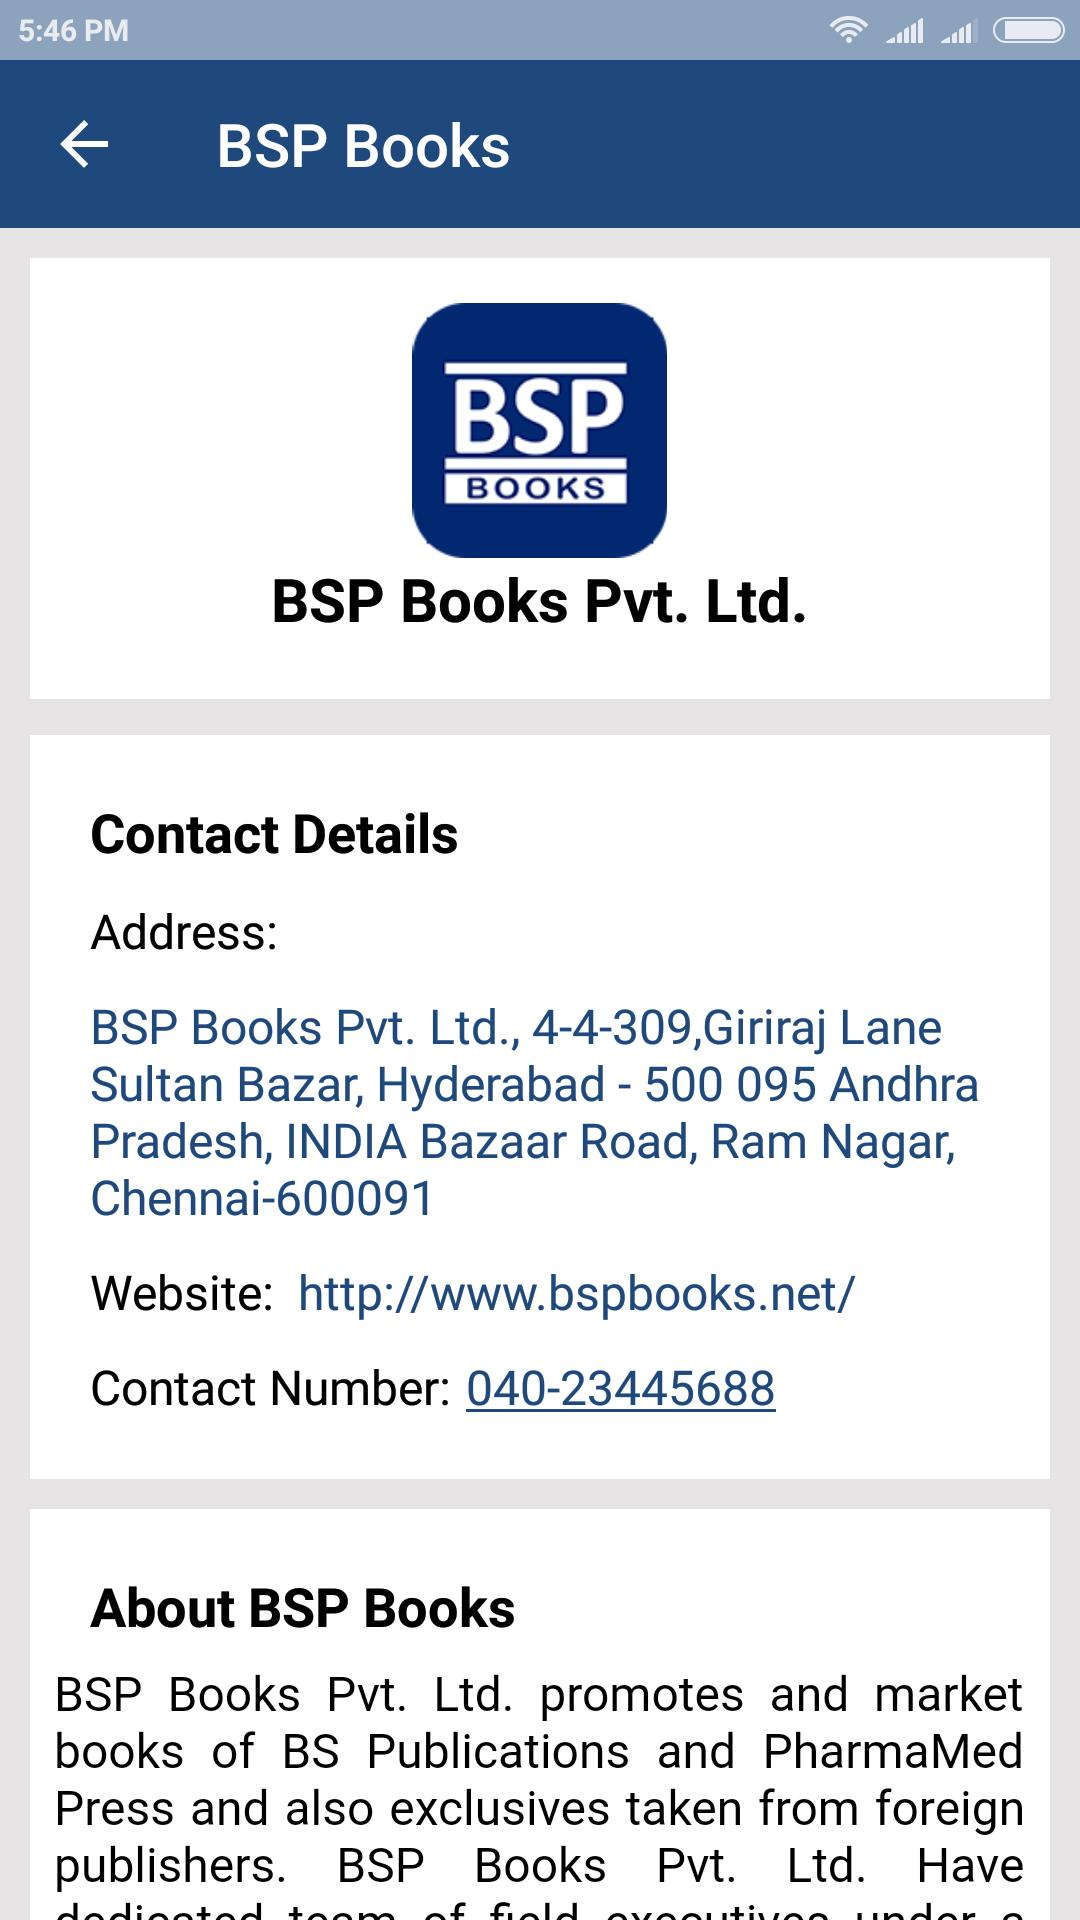 BSP Books for Android - APK Download